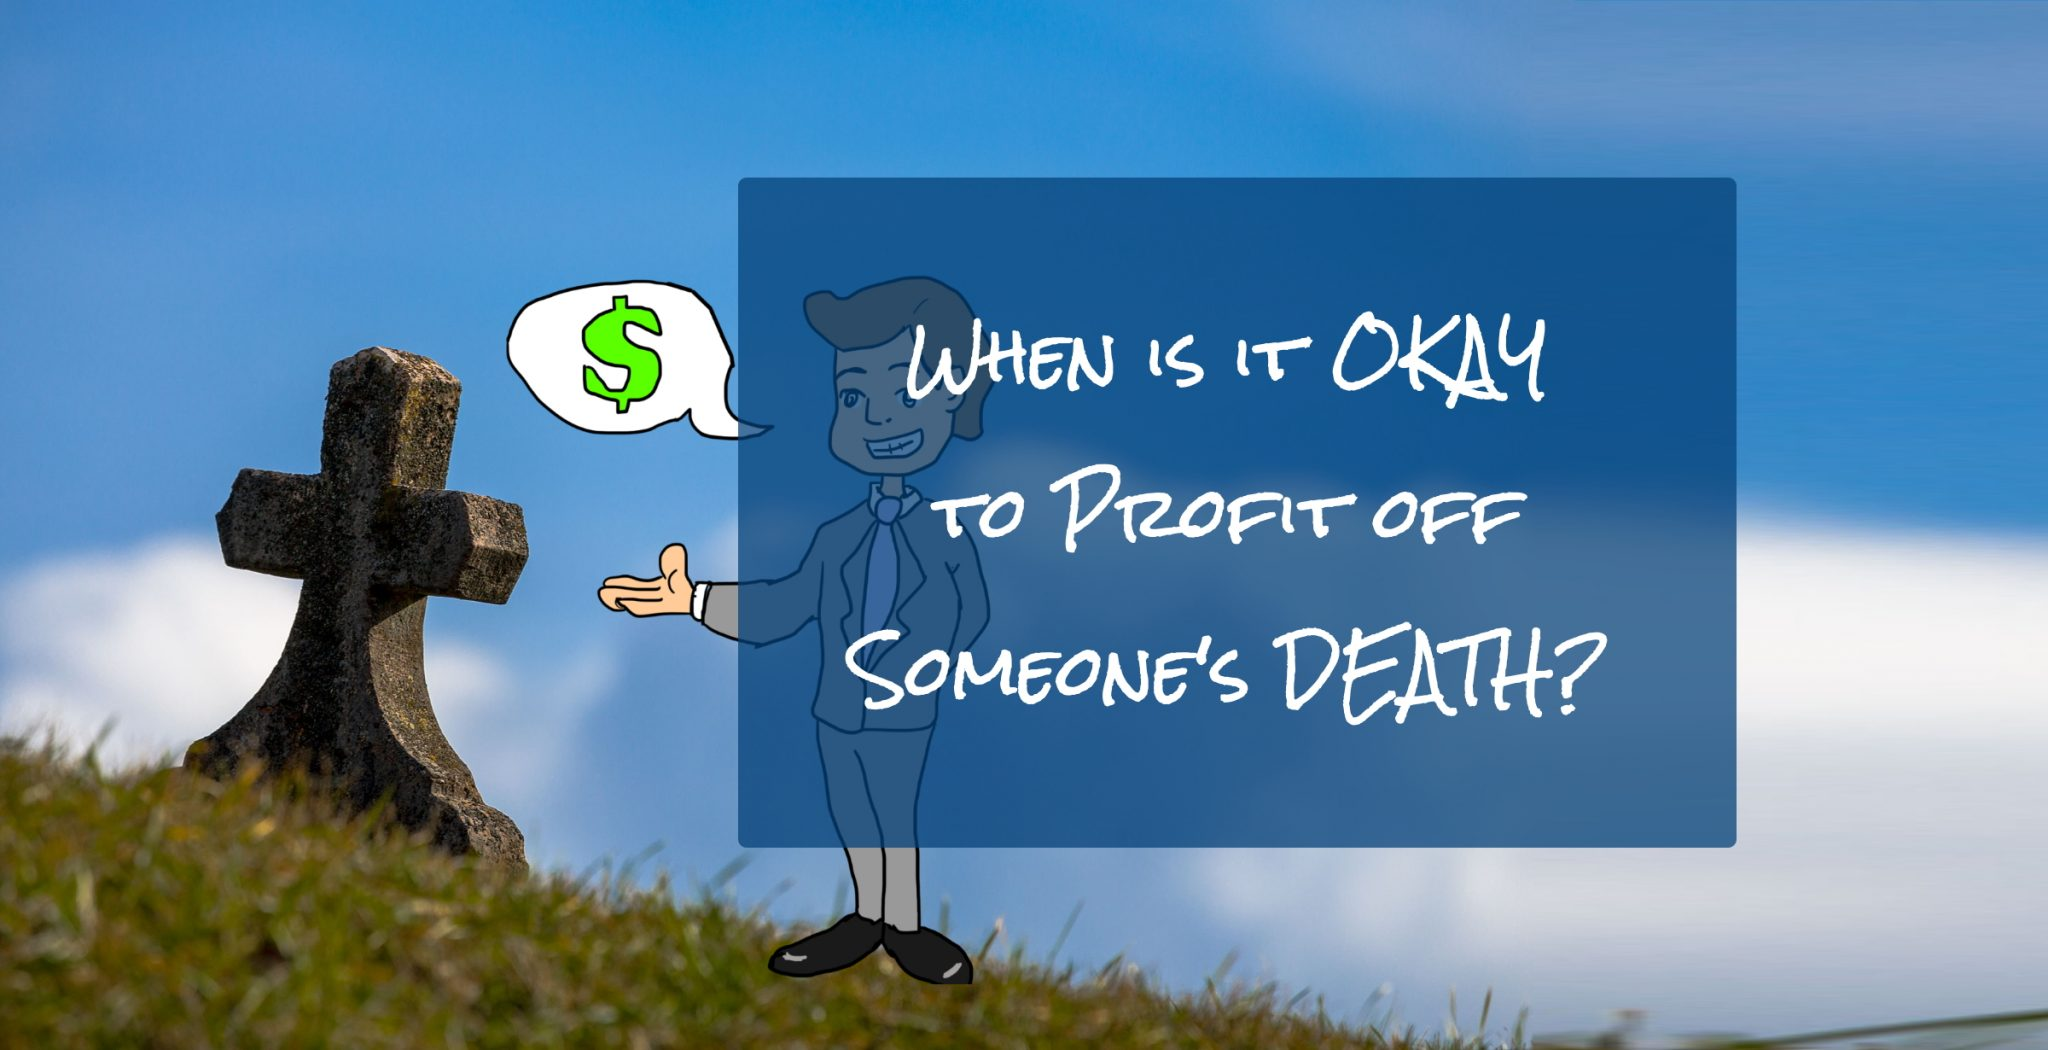 When is it okay to profit off someone's misfortune or even death? 11